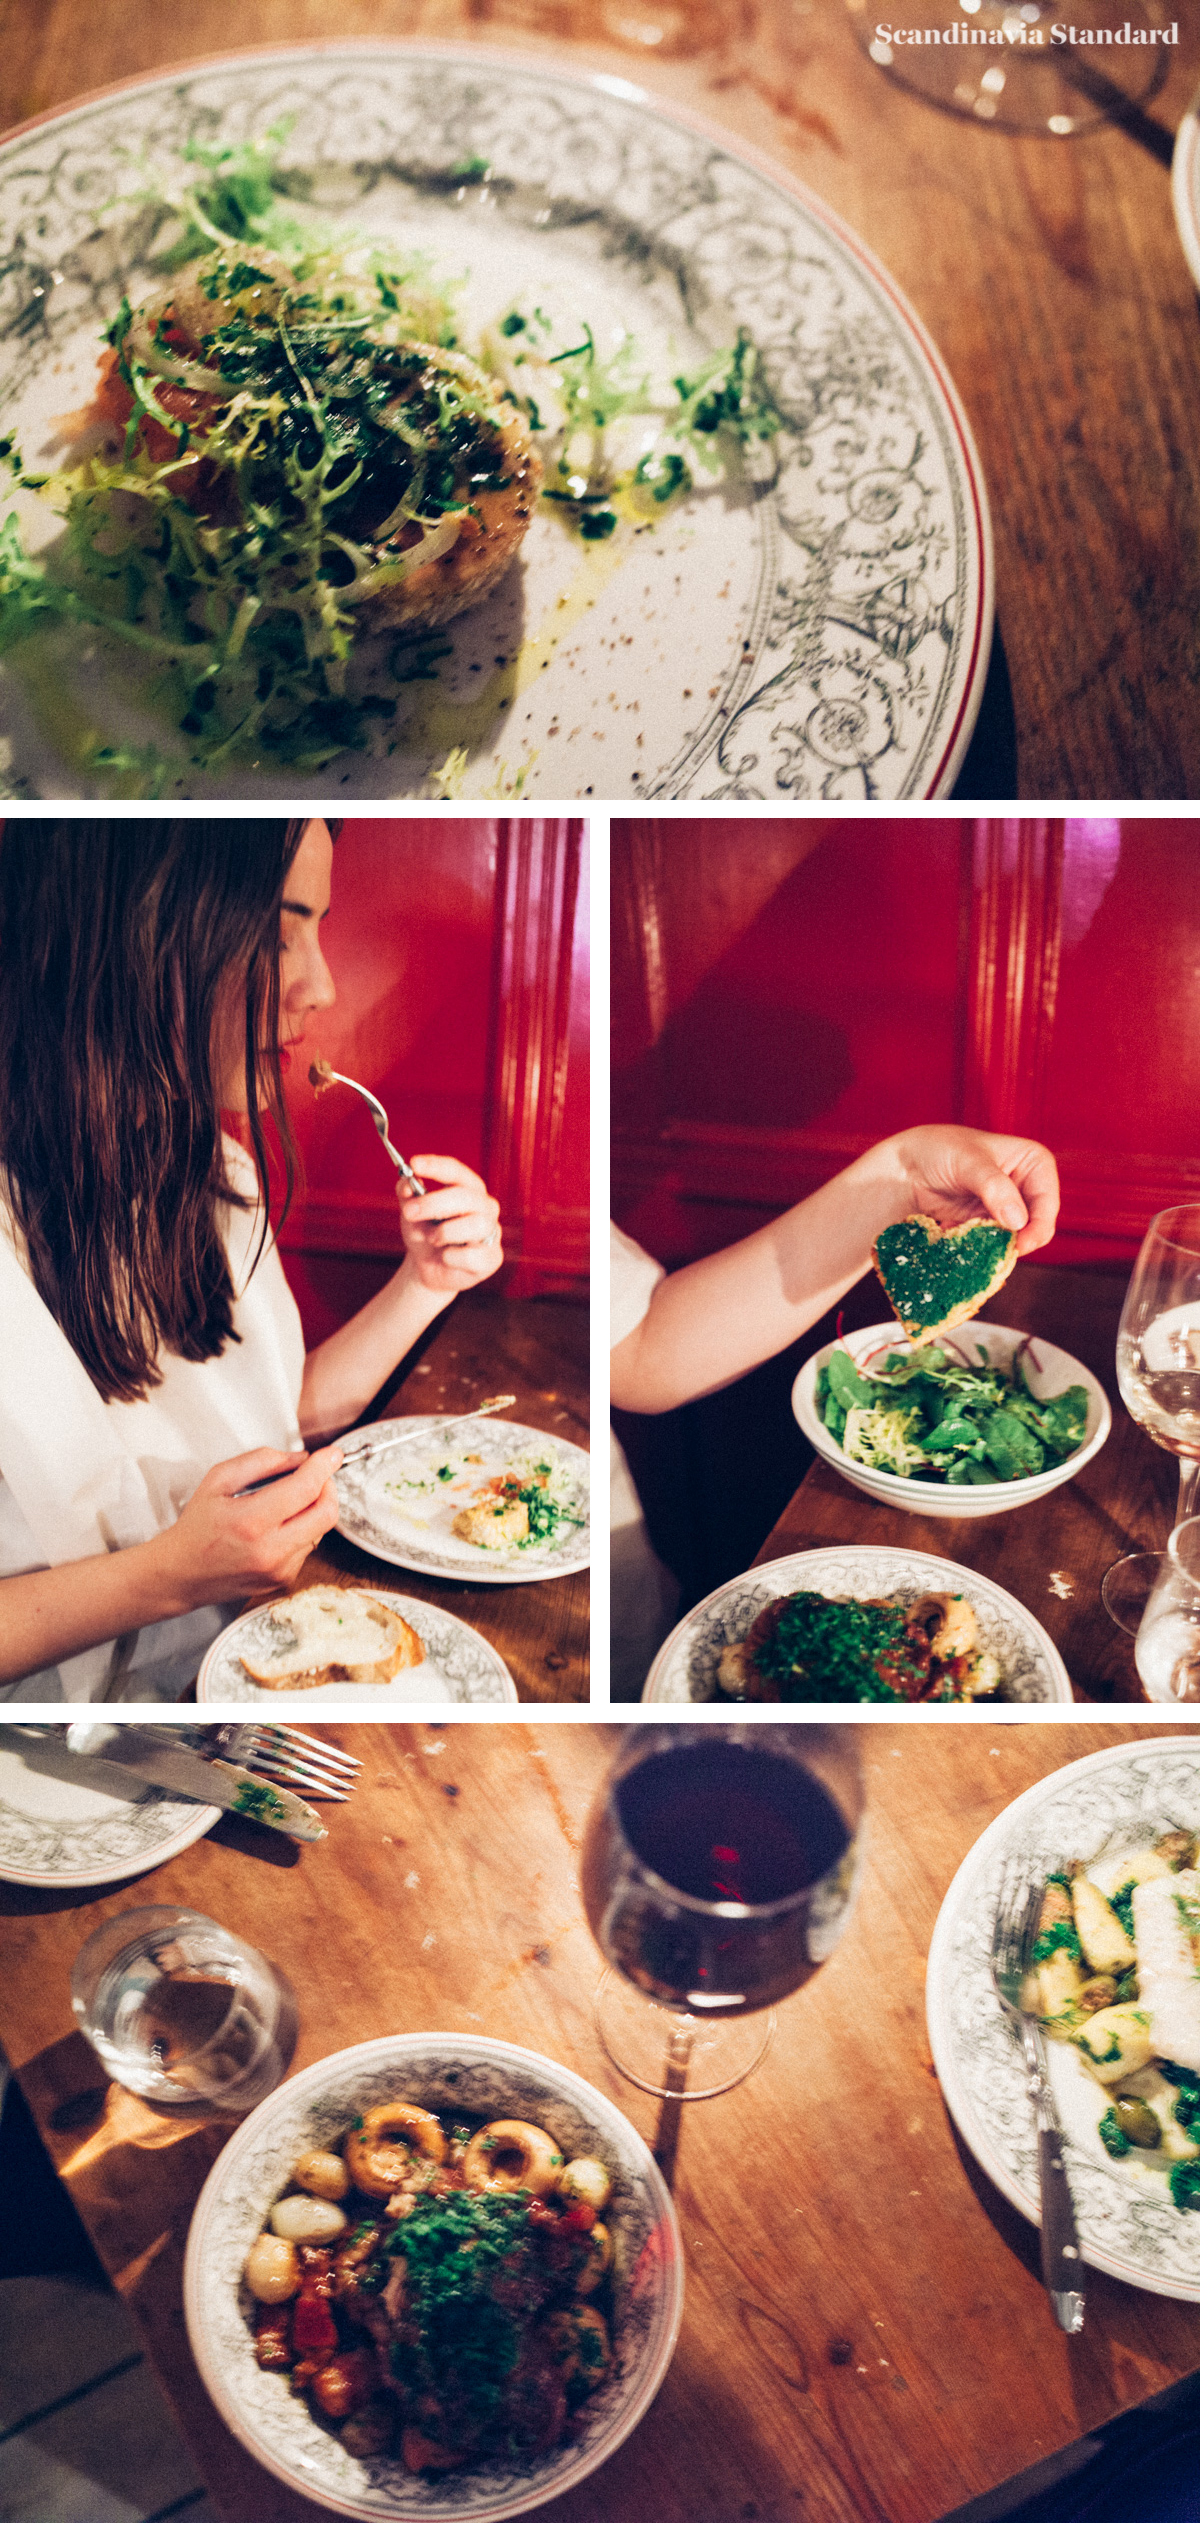 Mains - Baked cod and Coq au Vin at Je t'aime | Scandinavia Standard